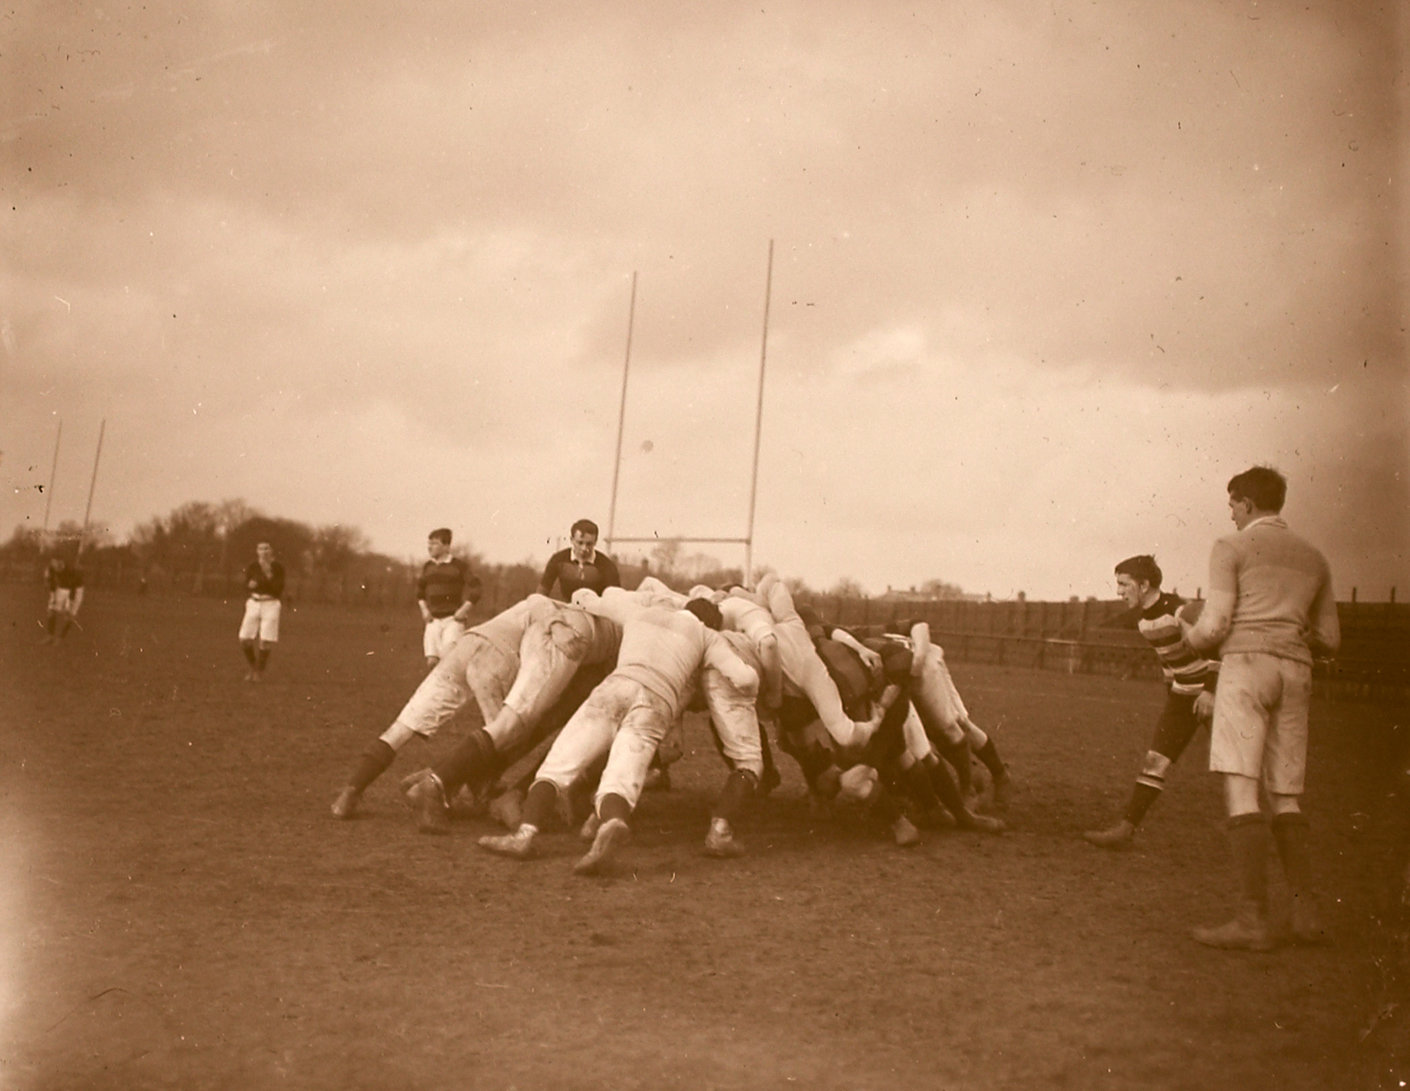 Rugby players in a scrum, ca.1890-1910, John J. Clarke, National Library of Ireland, In Copyright